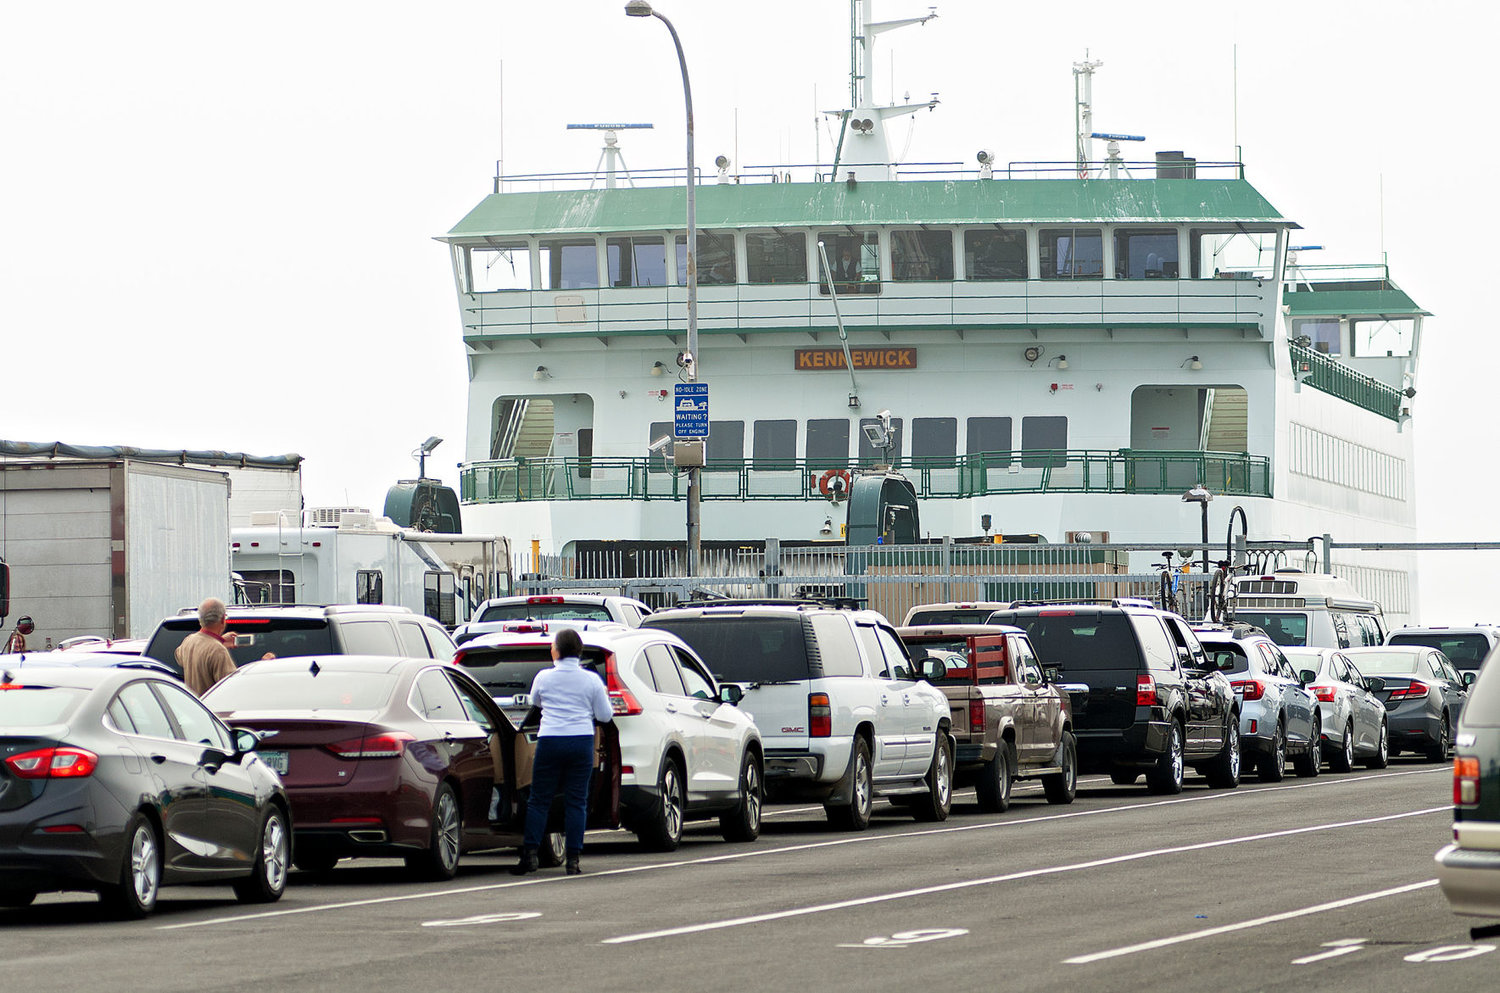 ferry: 1-boat woes: rudder problems, crab pot lines ground vessel